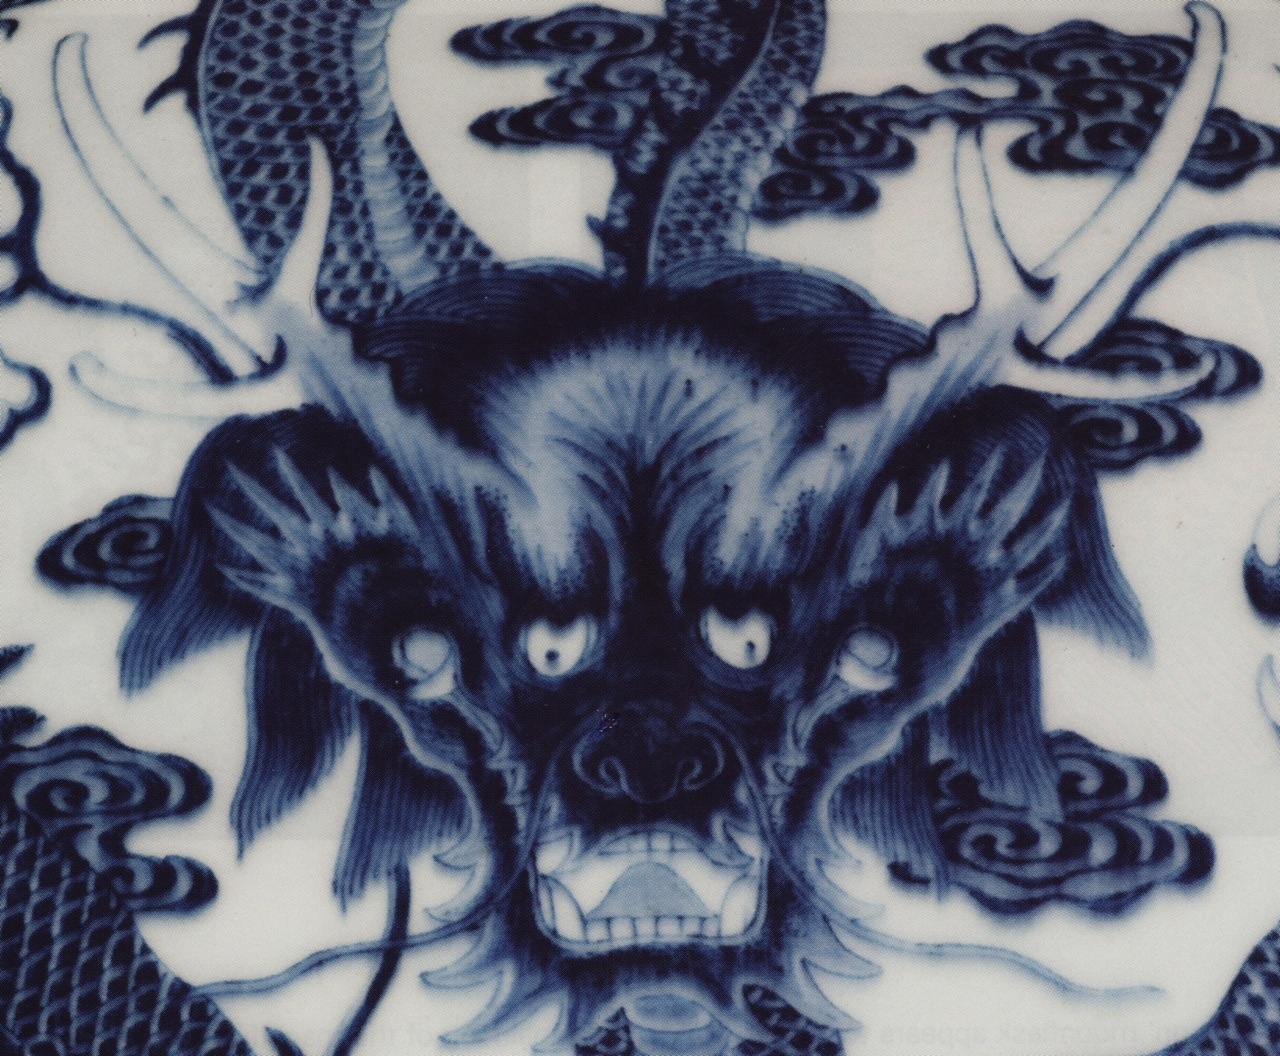 Eugene hn ceramic artist the meaning and significance of the nine resemblances of the dragon according to wang fu as captured on a rare blue and white dragon moonflask as cited in a sothebys catalogue 7 nov 2007 buycottarizona Choice Image